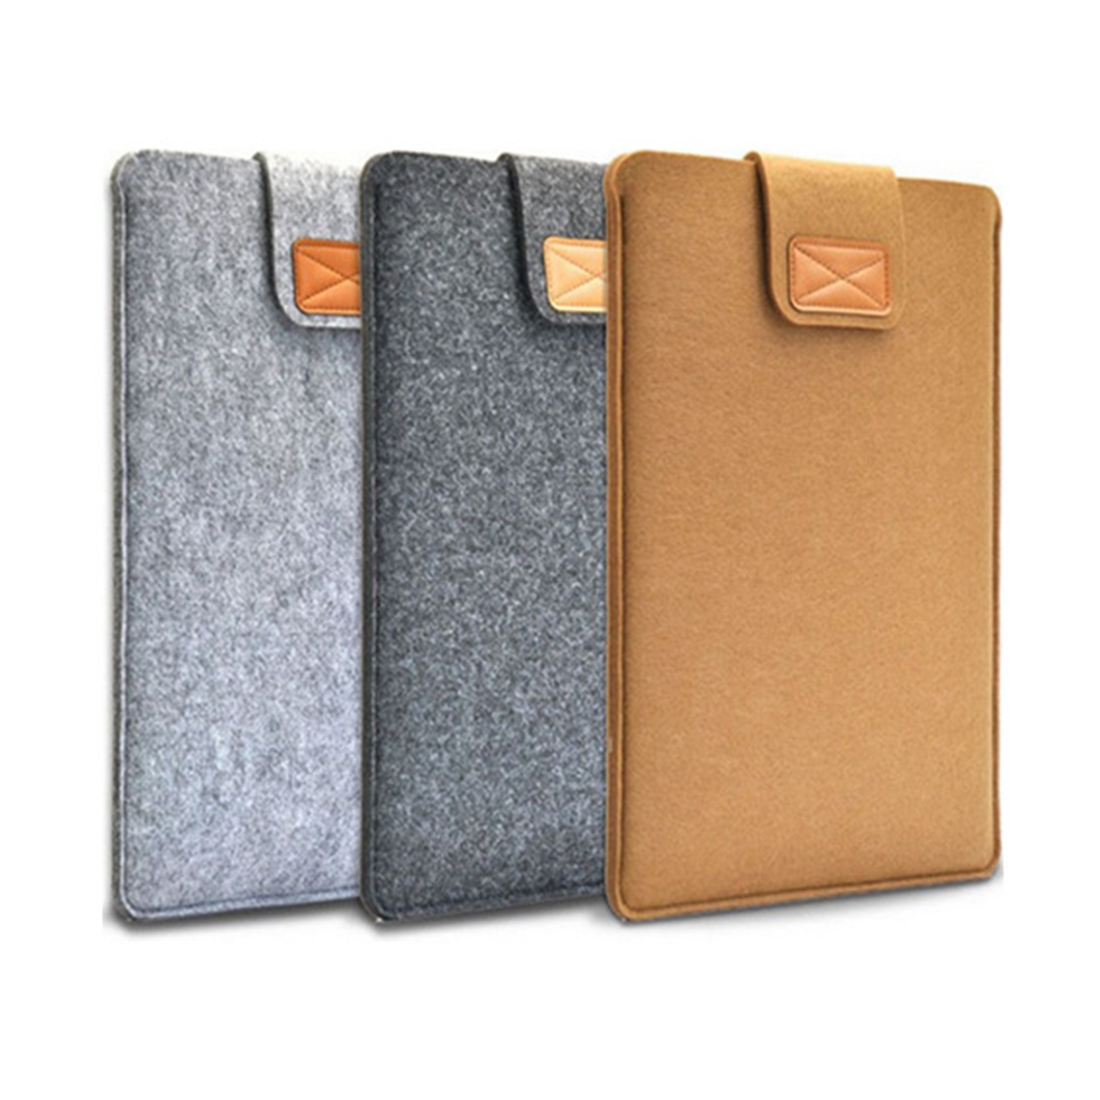 New Soft Ultrabook Laptop Sleeve Case Cover Bag For Macbook Air 11 13 15 inch